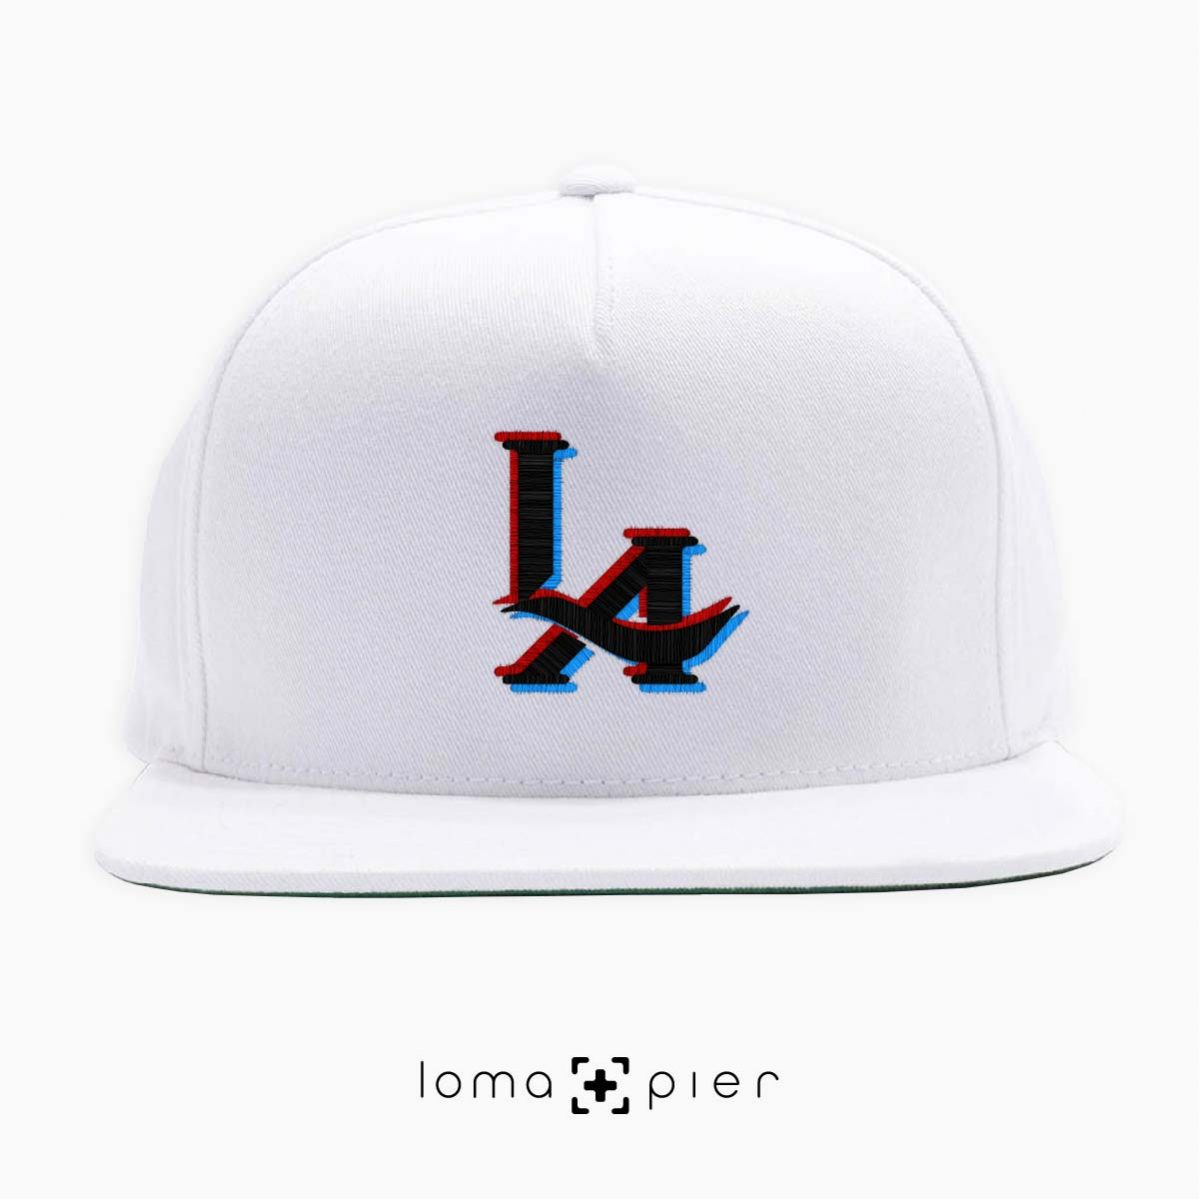 3D LA logo hat in white by loma+pier hat store